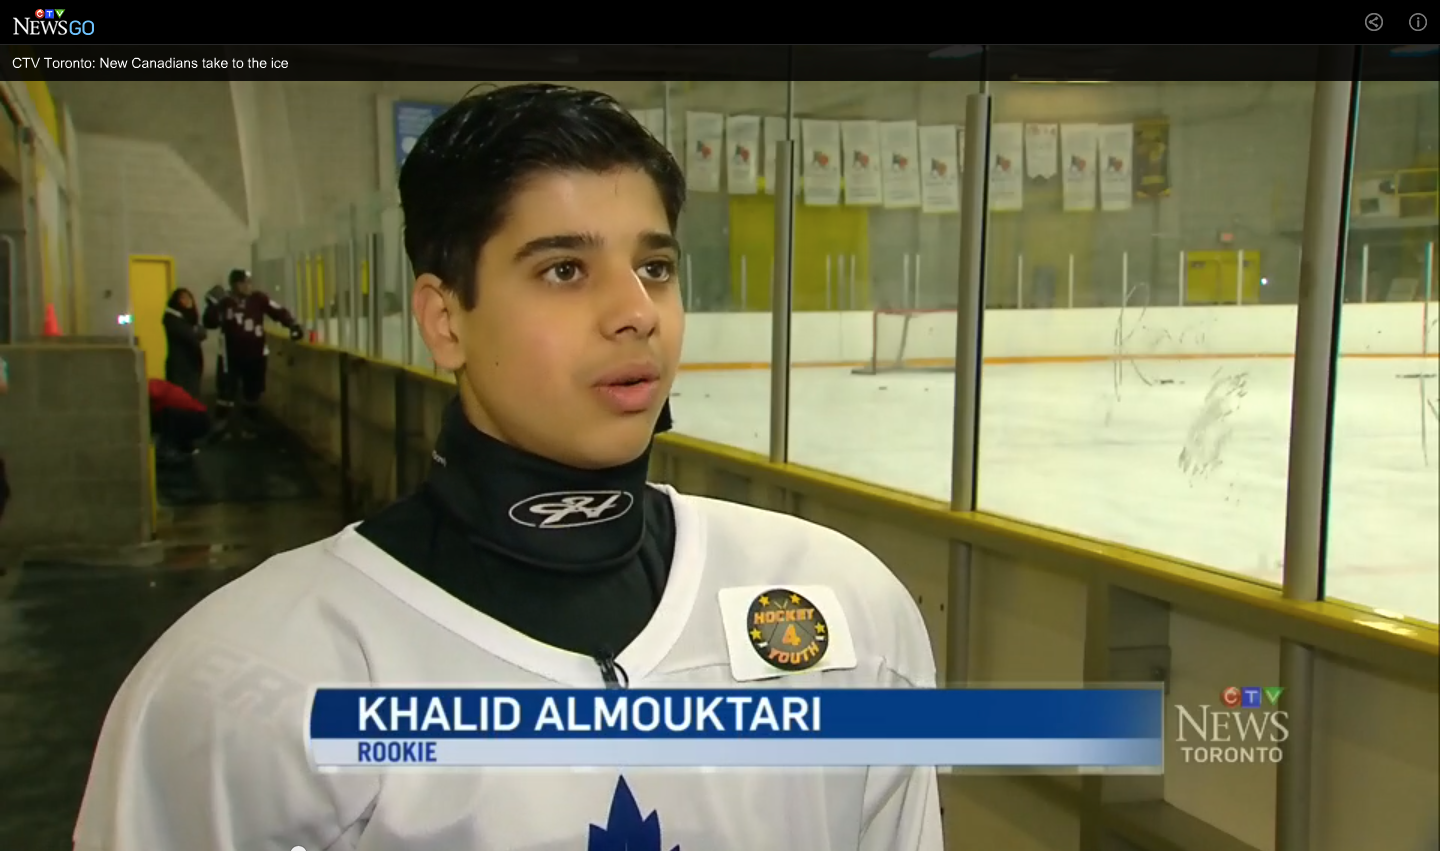 CTV News LIVE at noon  with Khalid and his conversation about the thrill of playing hockey.